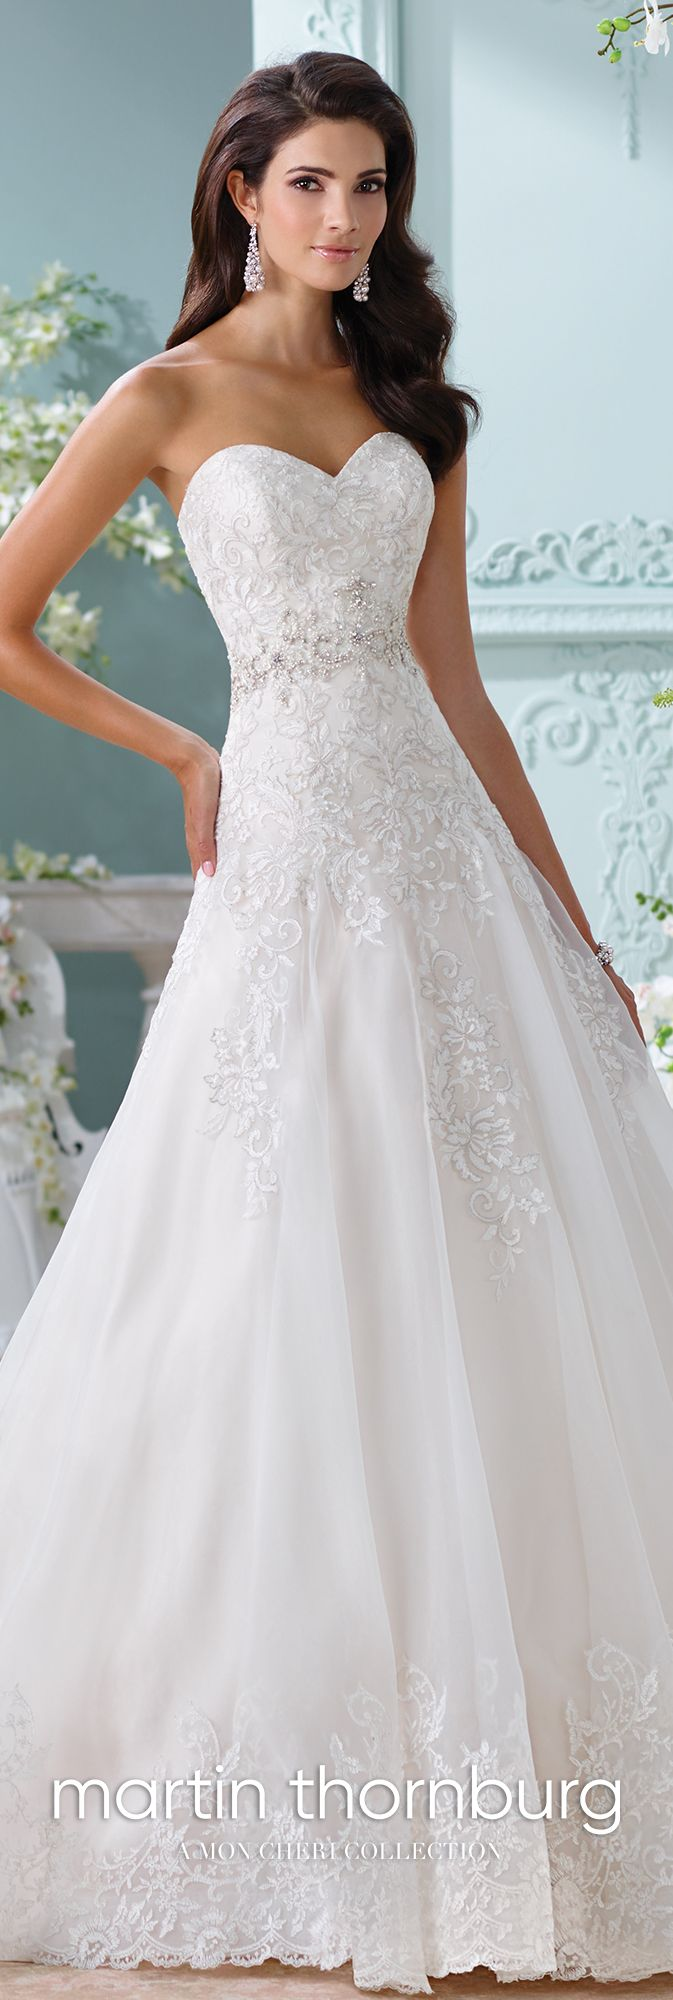 Martin Thornburg 116210 – Laina - Strapless organza and lace Aline wedding dress, metallic Schiffli lace appliqués over satin gown with sweetheart neckline, hand-beaded jeweled motif at natural waist, scalloped hem and chapel length train, detachable spaghetti and halter straps included.